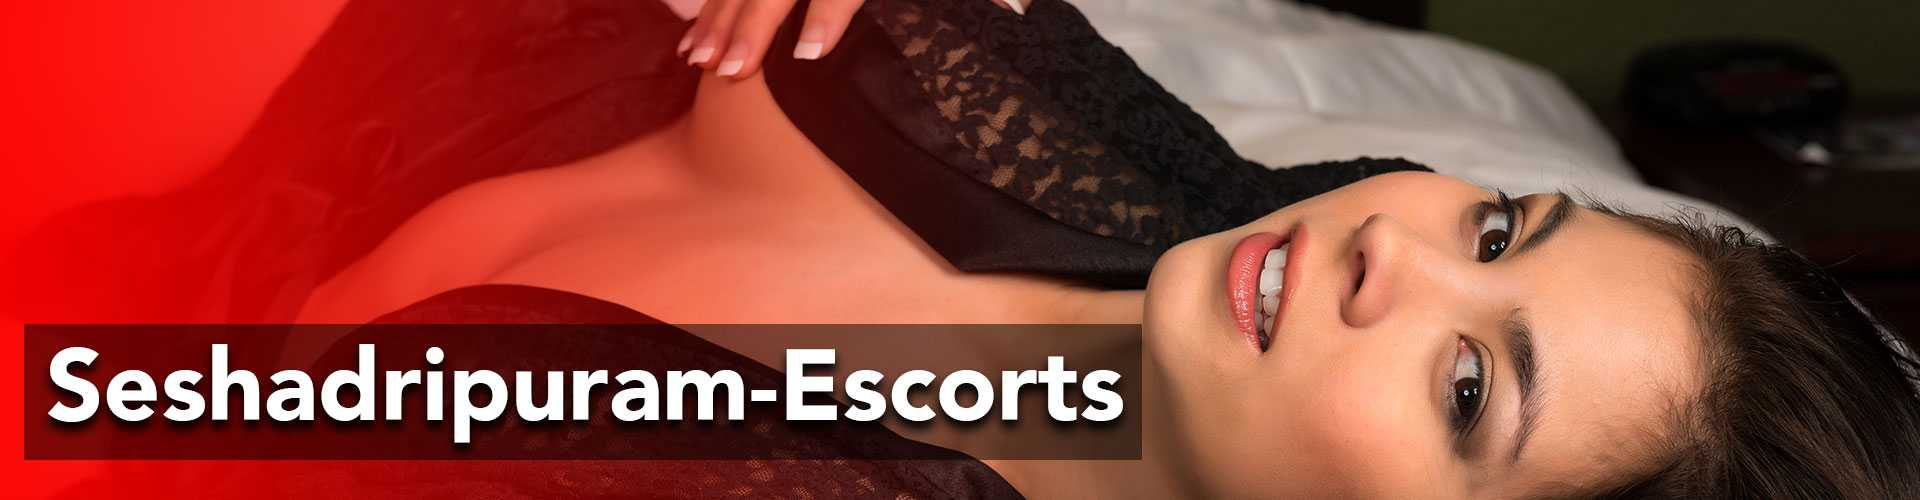 Escorts services in seshadripuram